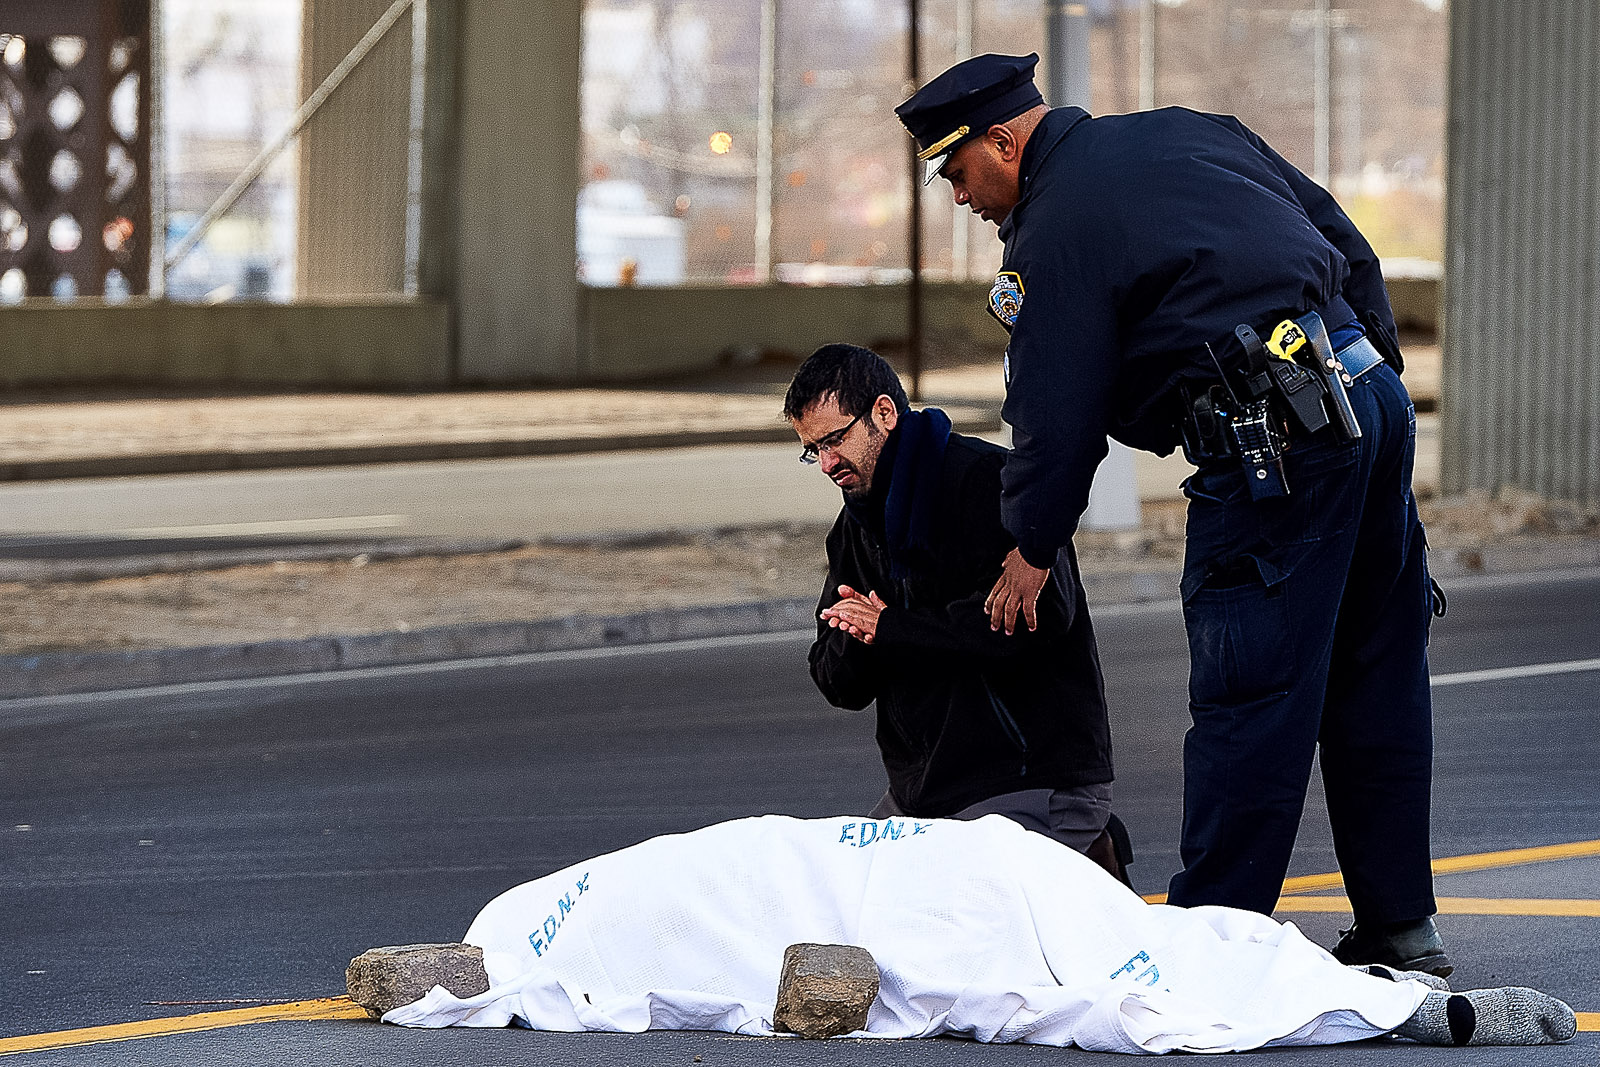 Waddah Mubarz kneels by the body of his cousin Abubakar Saleh by Austin Place on Bruckner Blvd. on Sunday, Nov. 24, 2013 in Bronx, N.Y. Saleh was struck by another vehicle as he examined his disabled vehicle on the upper level of the Bruckner Expressway.